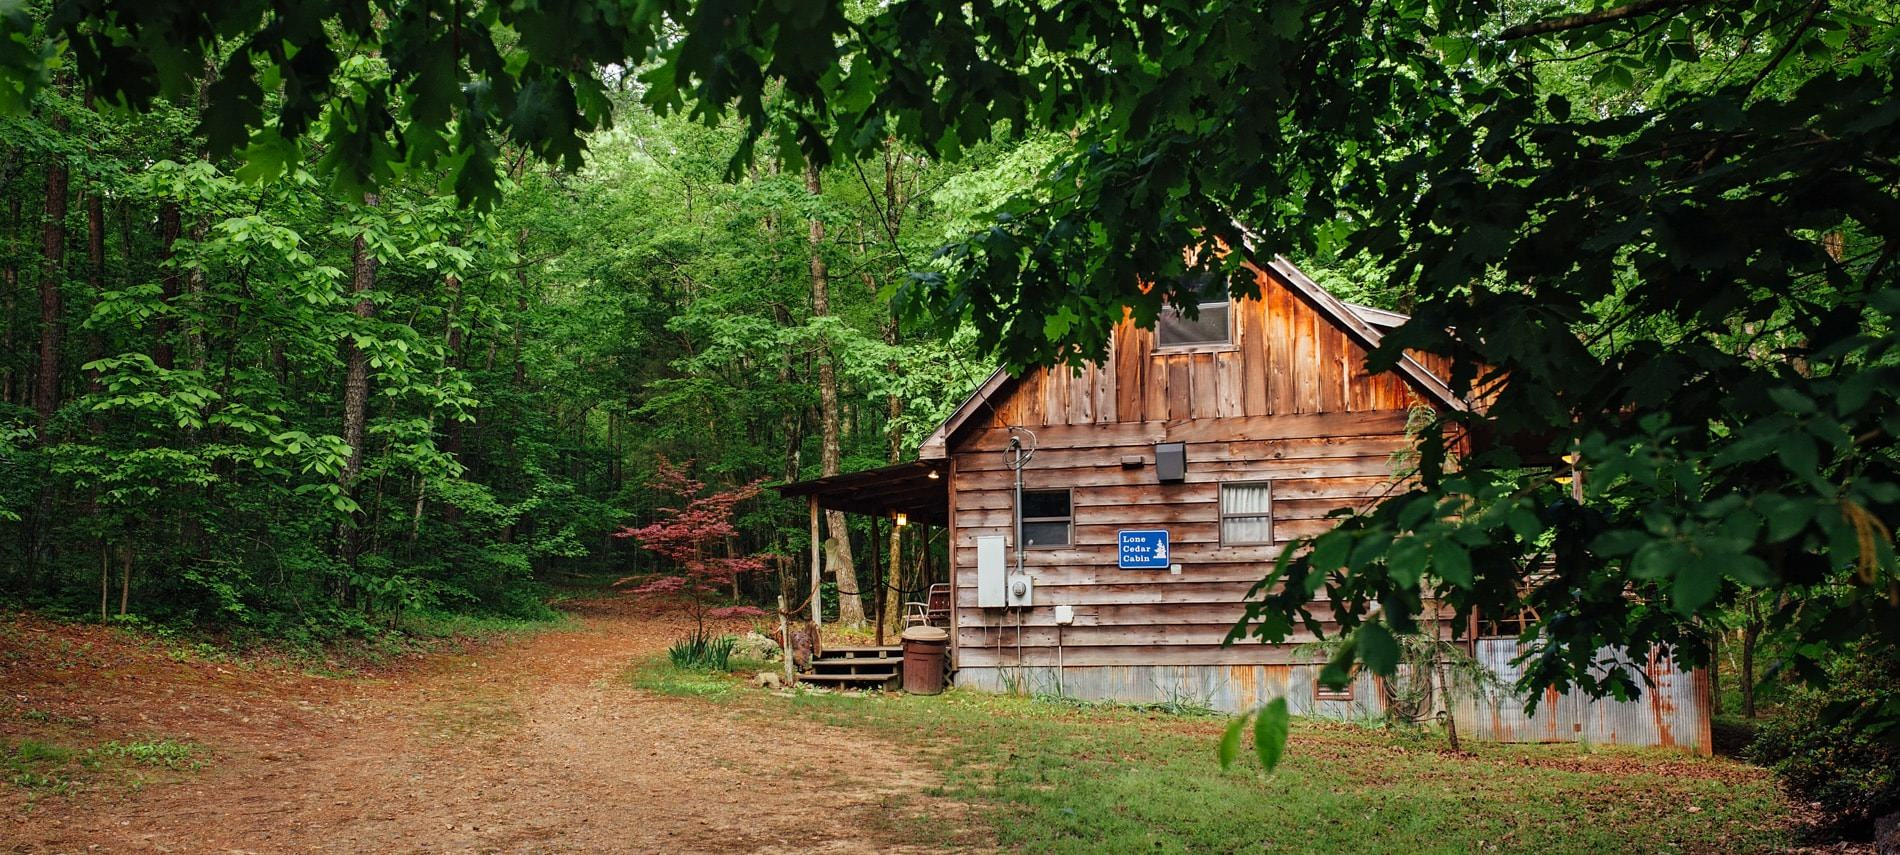 Exterior view of wooded cabin, side covered porch, surrounded by lush green trees